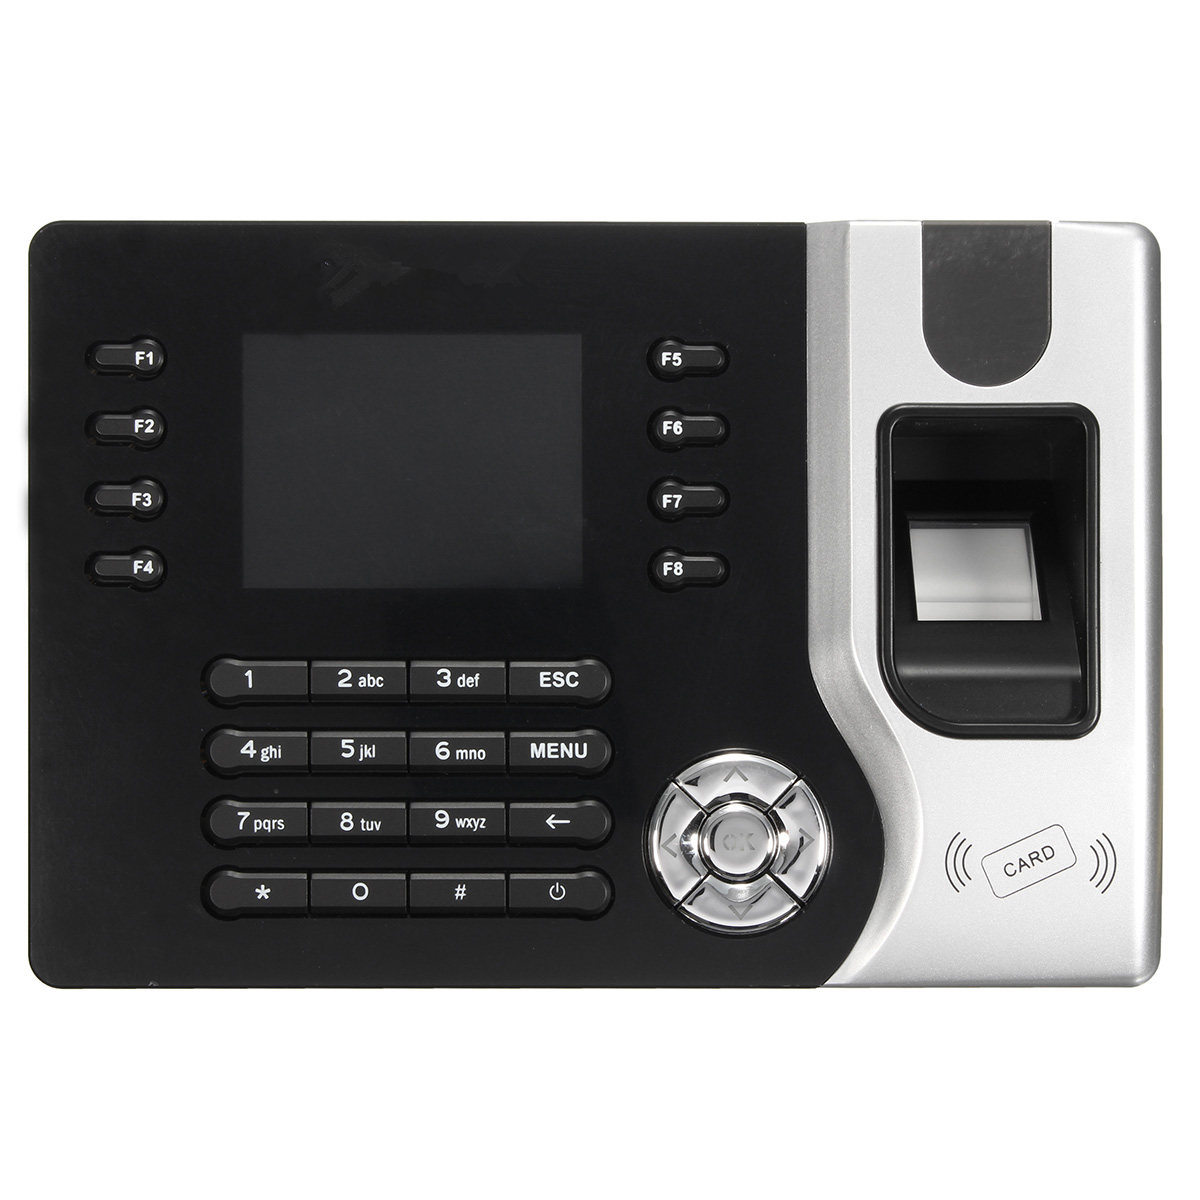 2.4inch TCP/IP Fingerprint Attendance Machine Access Control Time Clock Recording System Finger Print Password ID Card Mode 3 inch color screen m200 ic 13 56mhz smart card time attendance time recorder time clock with tcp ip